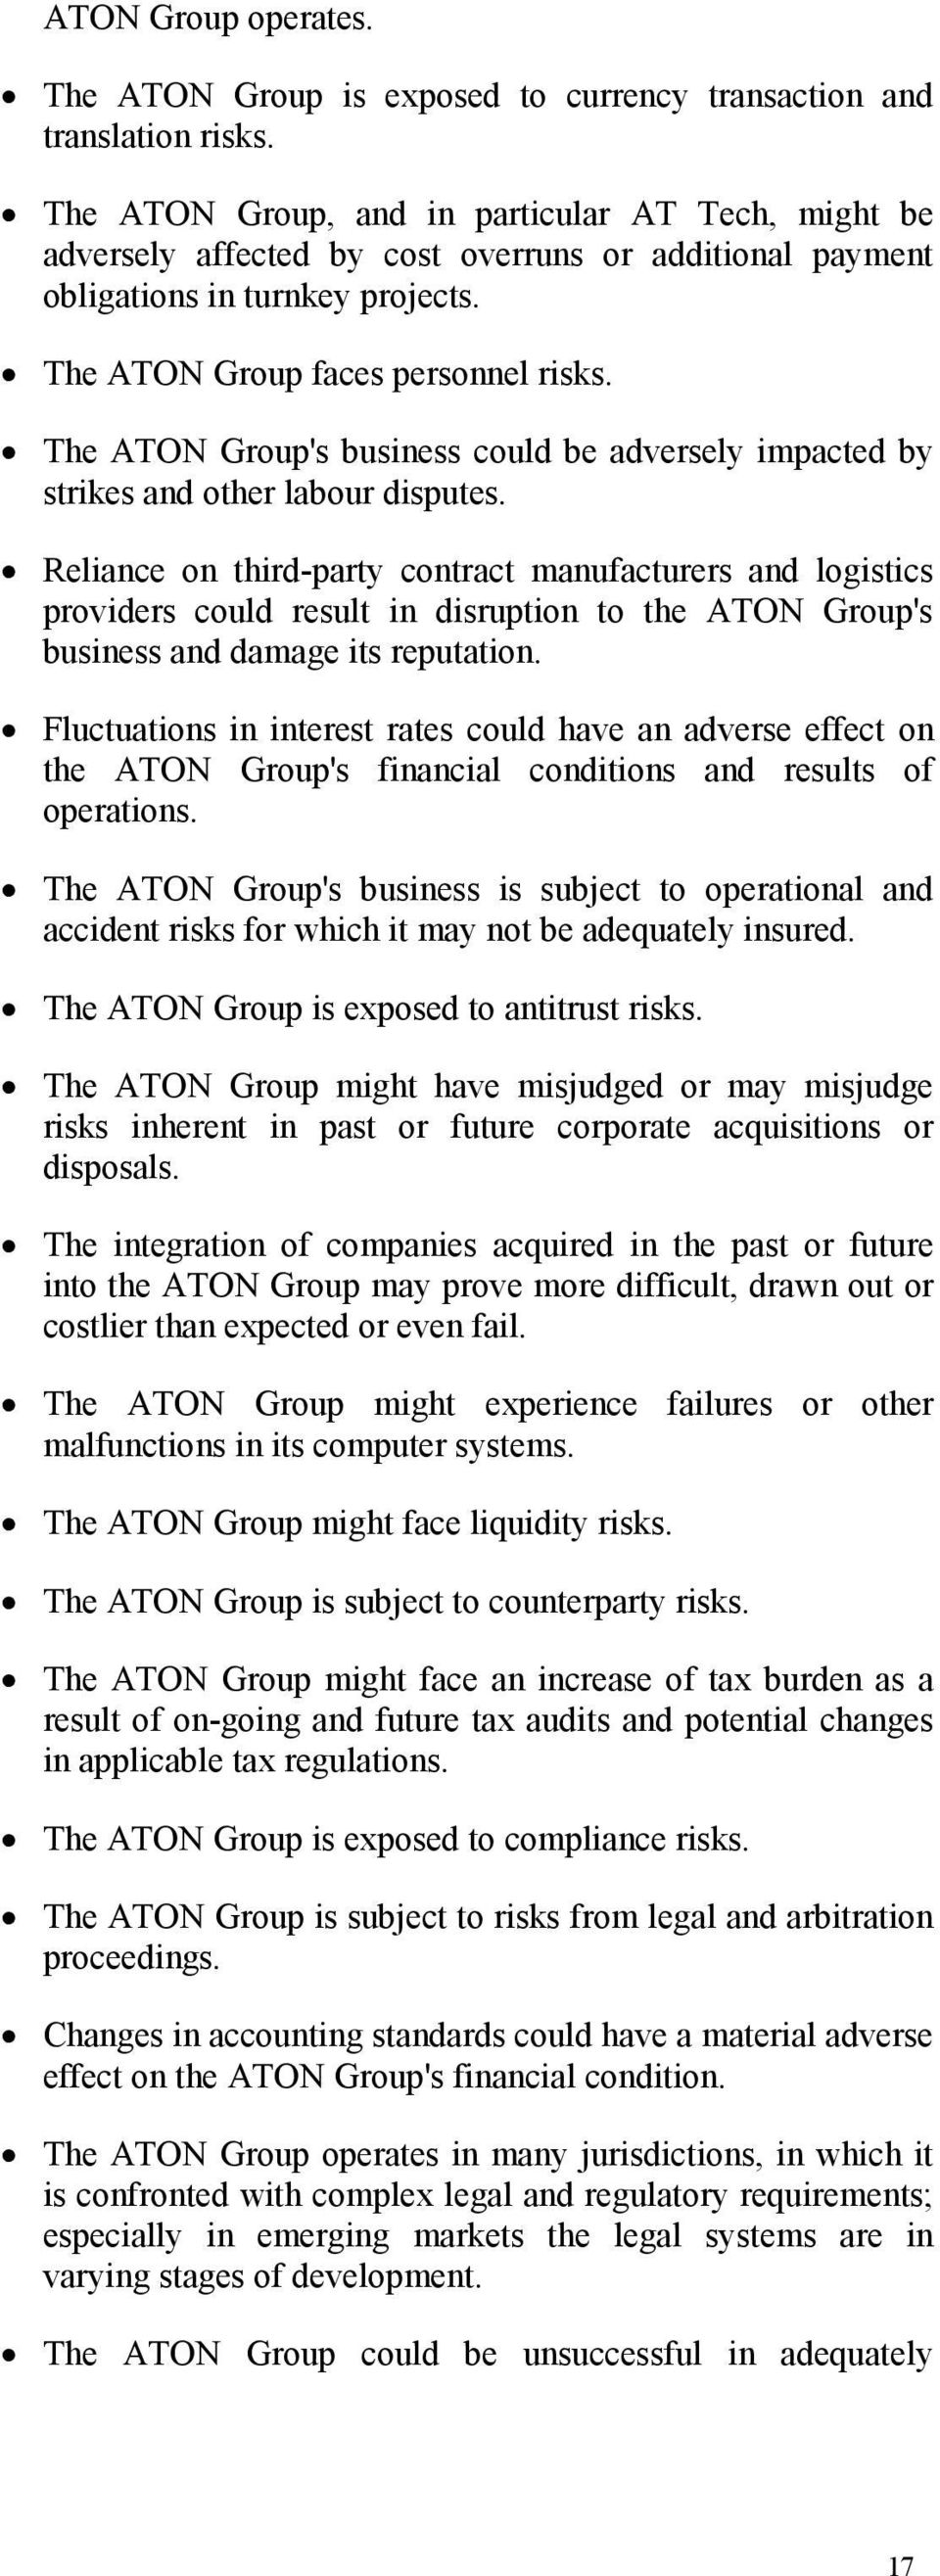 The ATON Group's business could be adversely impacted by strikes and other labour disputes.